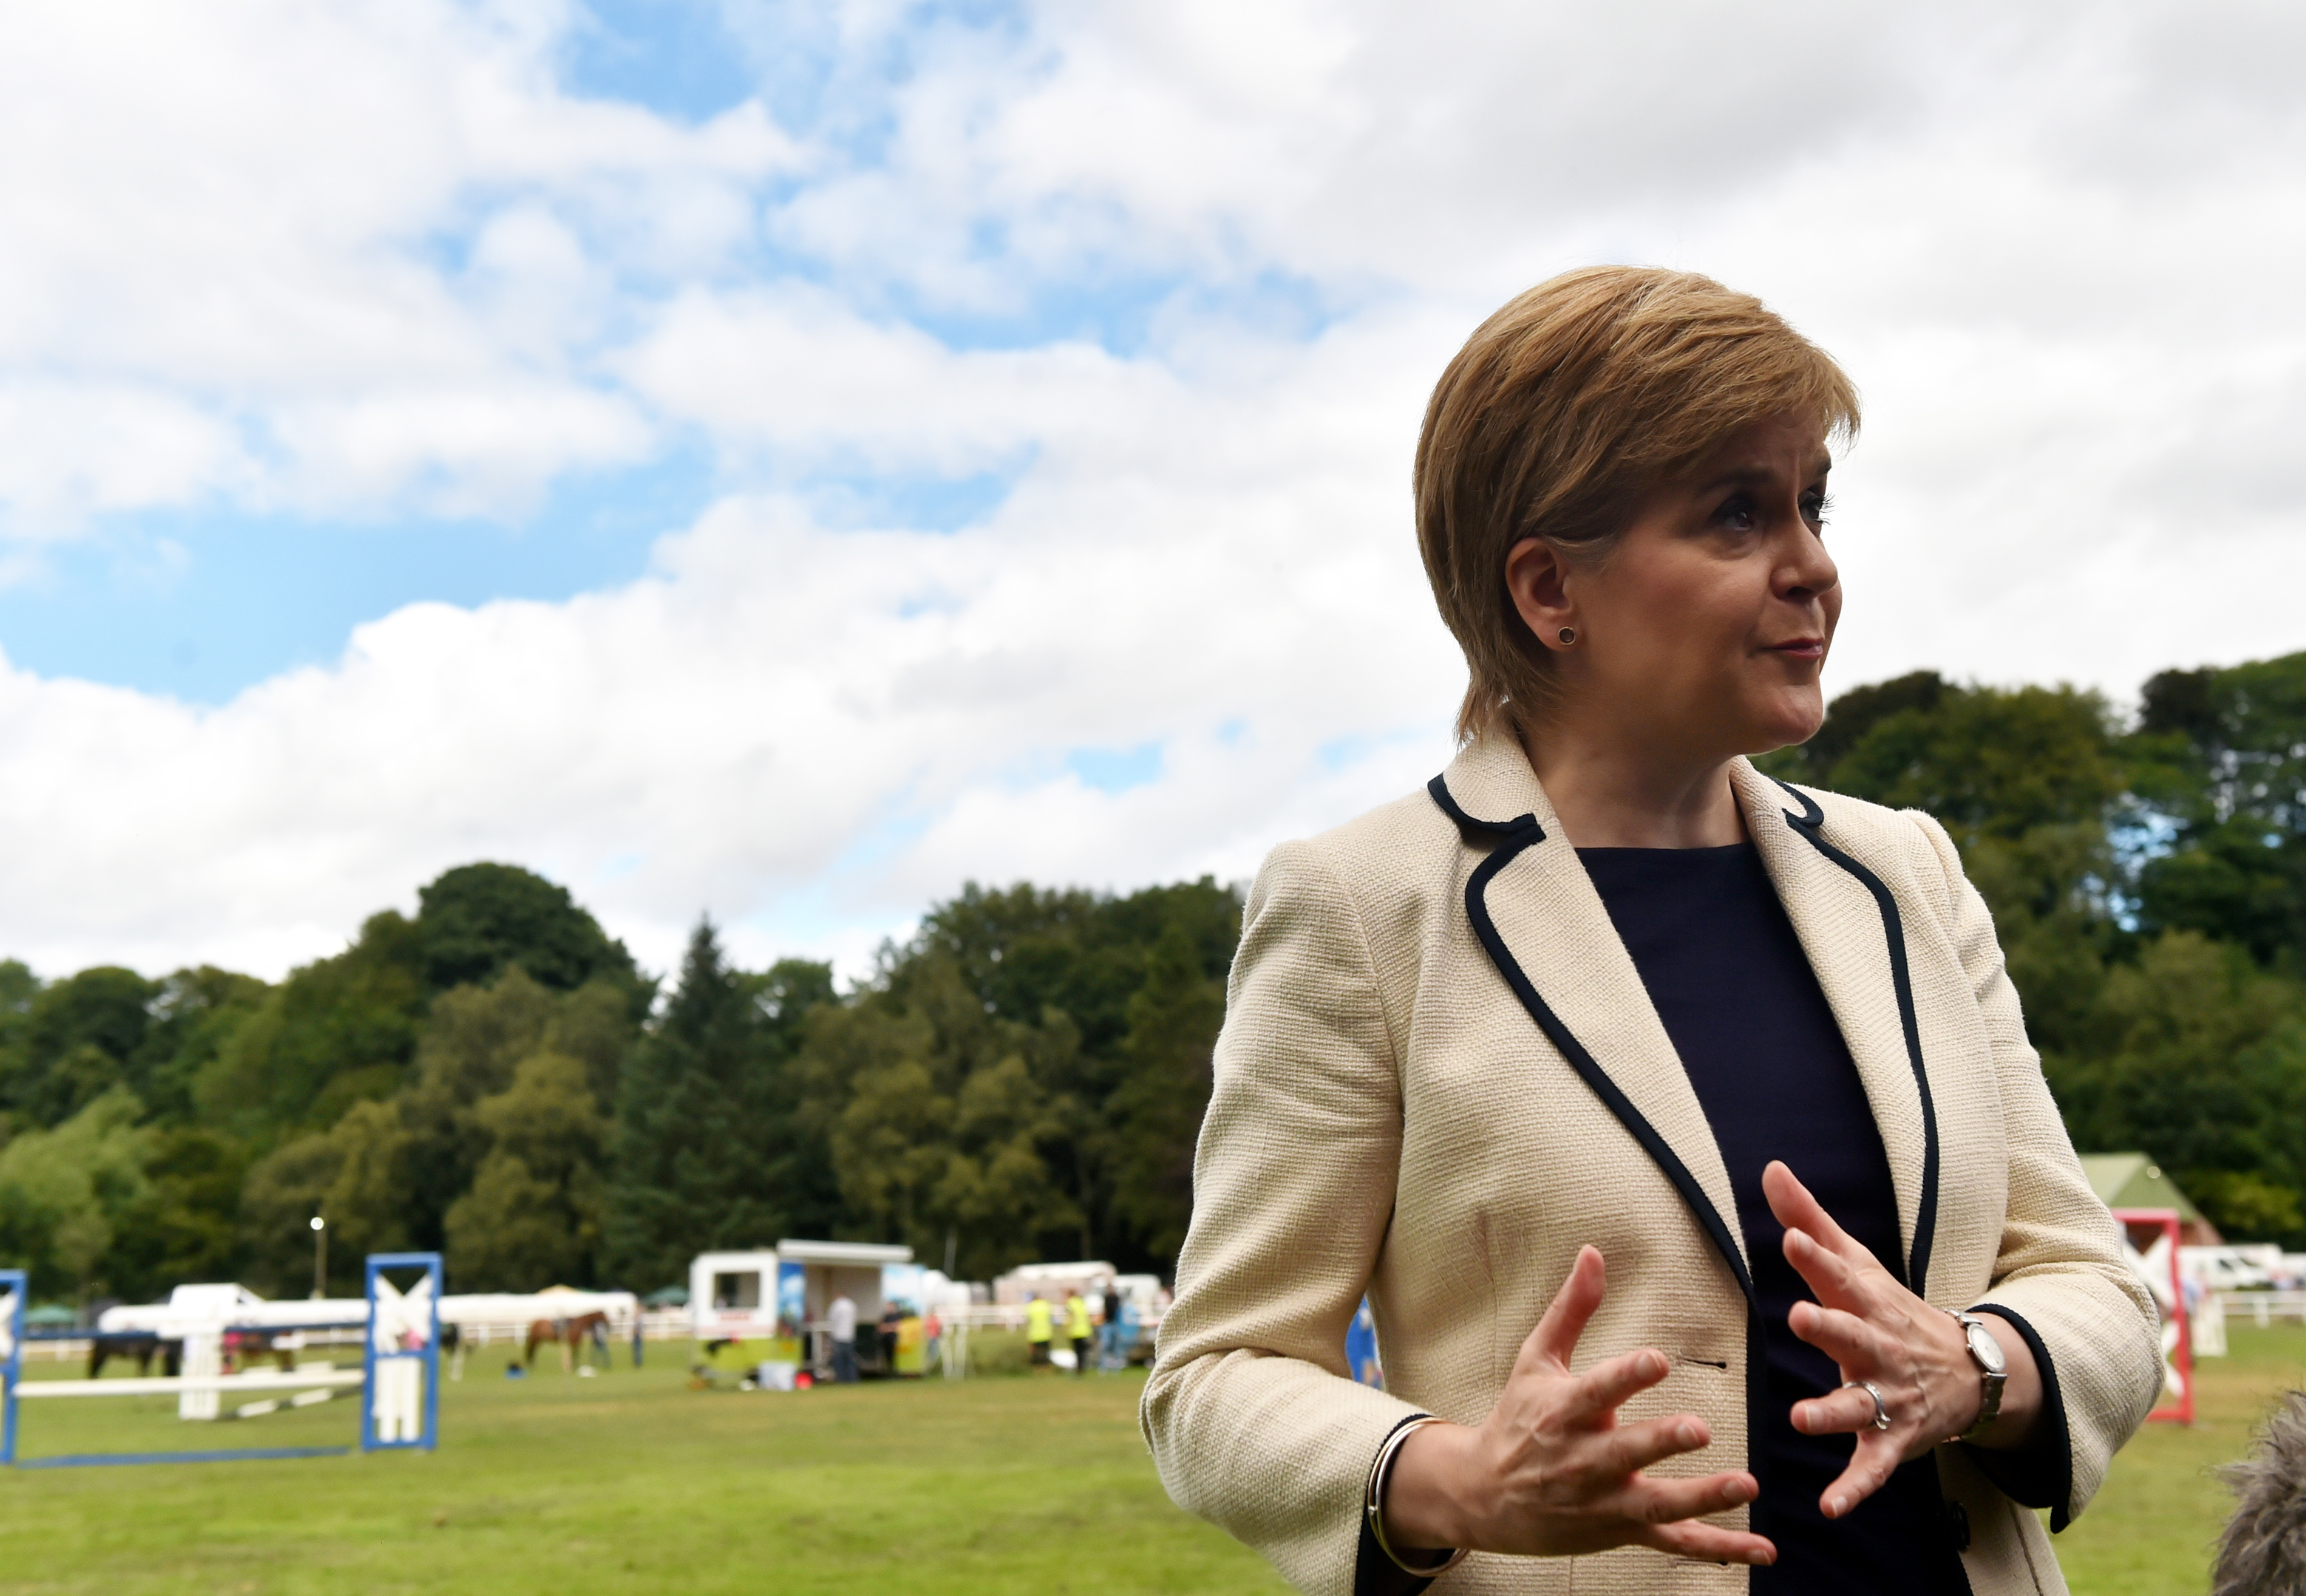 Nicola Sturgeon was urged to back the farmers. (Picture by Scott Baxter)